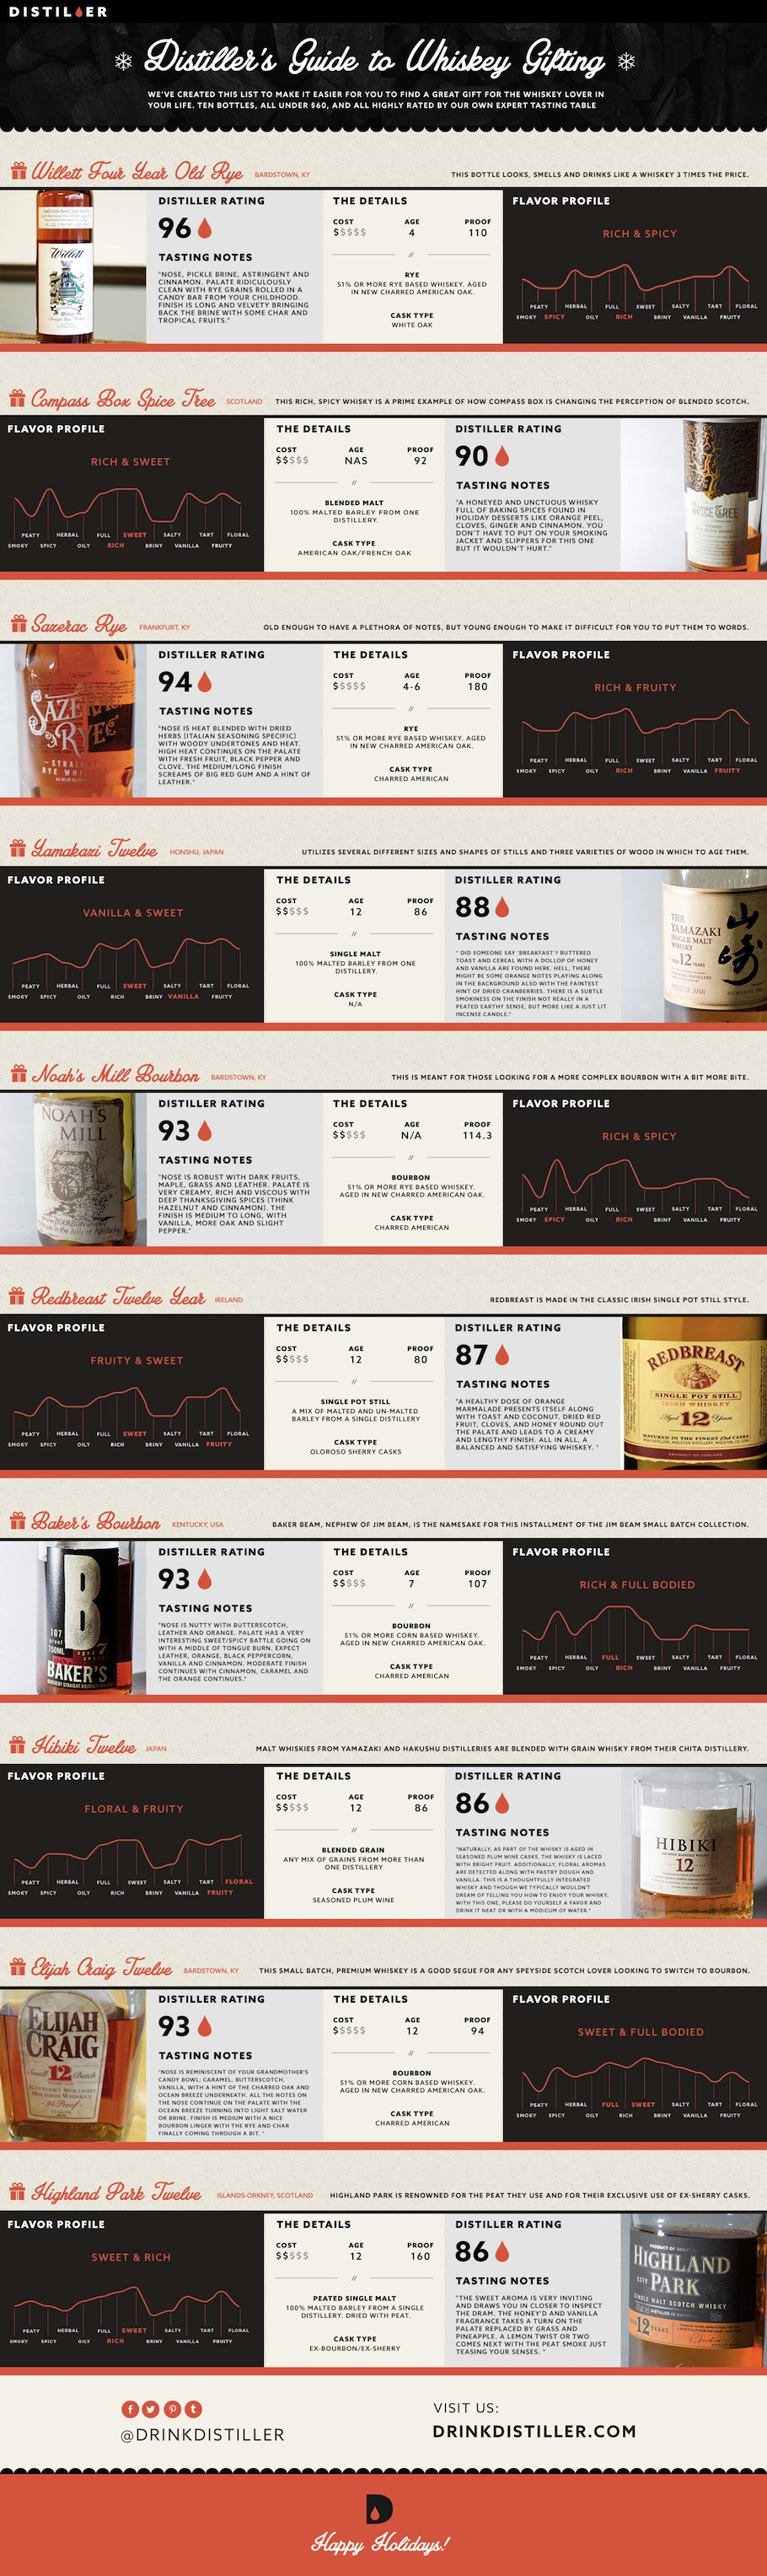 Distiller's holiday guide to whiskeys. (Click for the full-sized image.)